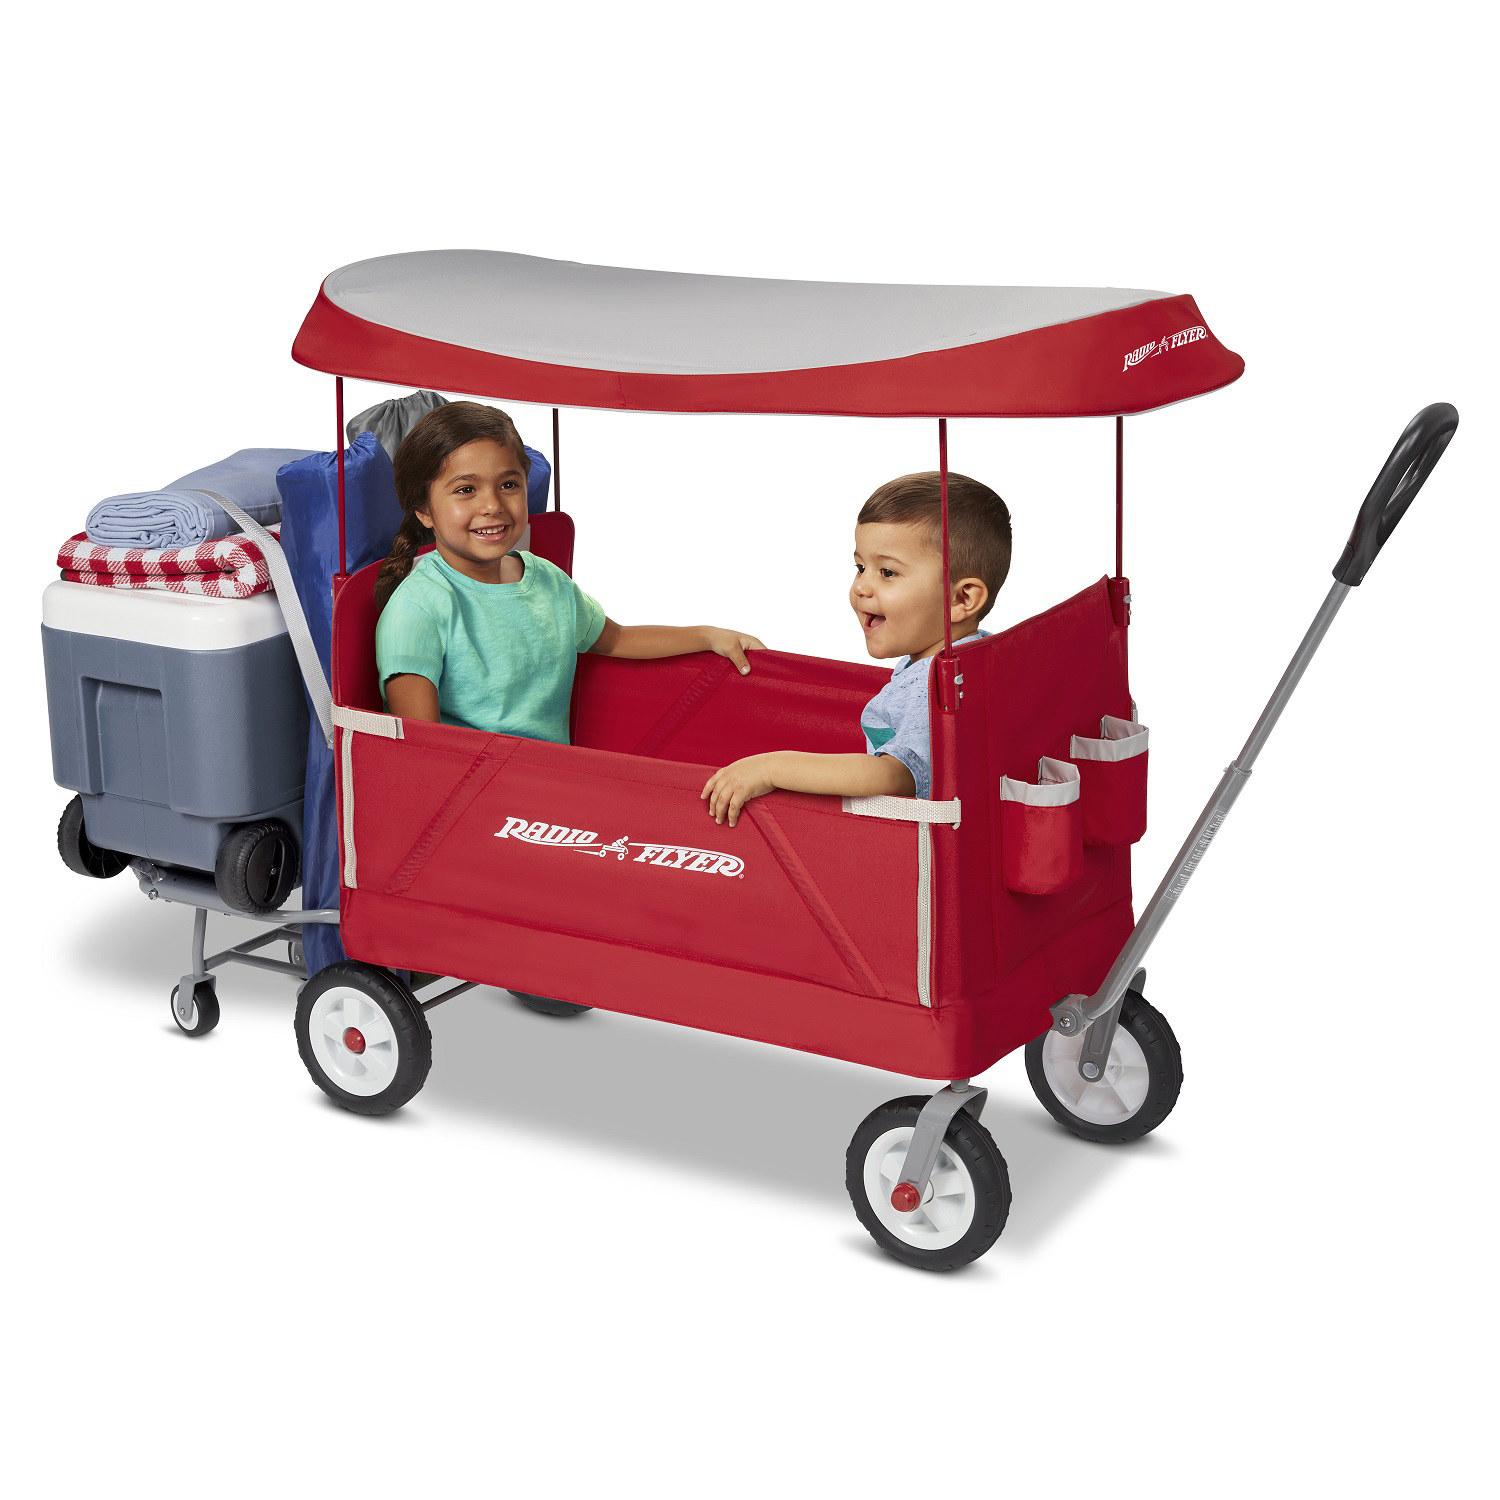 Two children in the red covered wagon